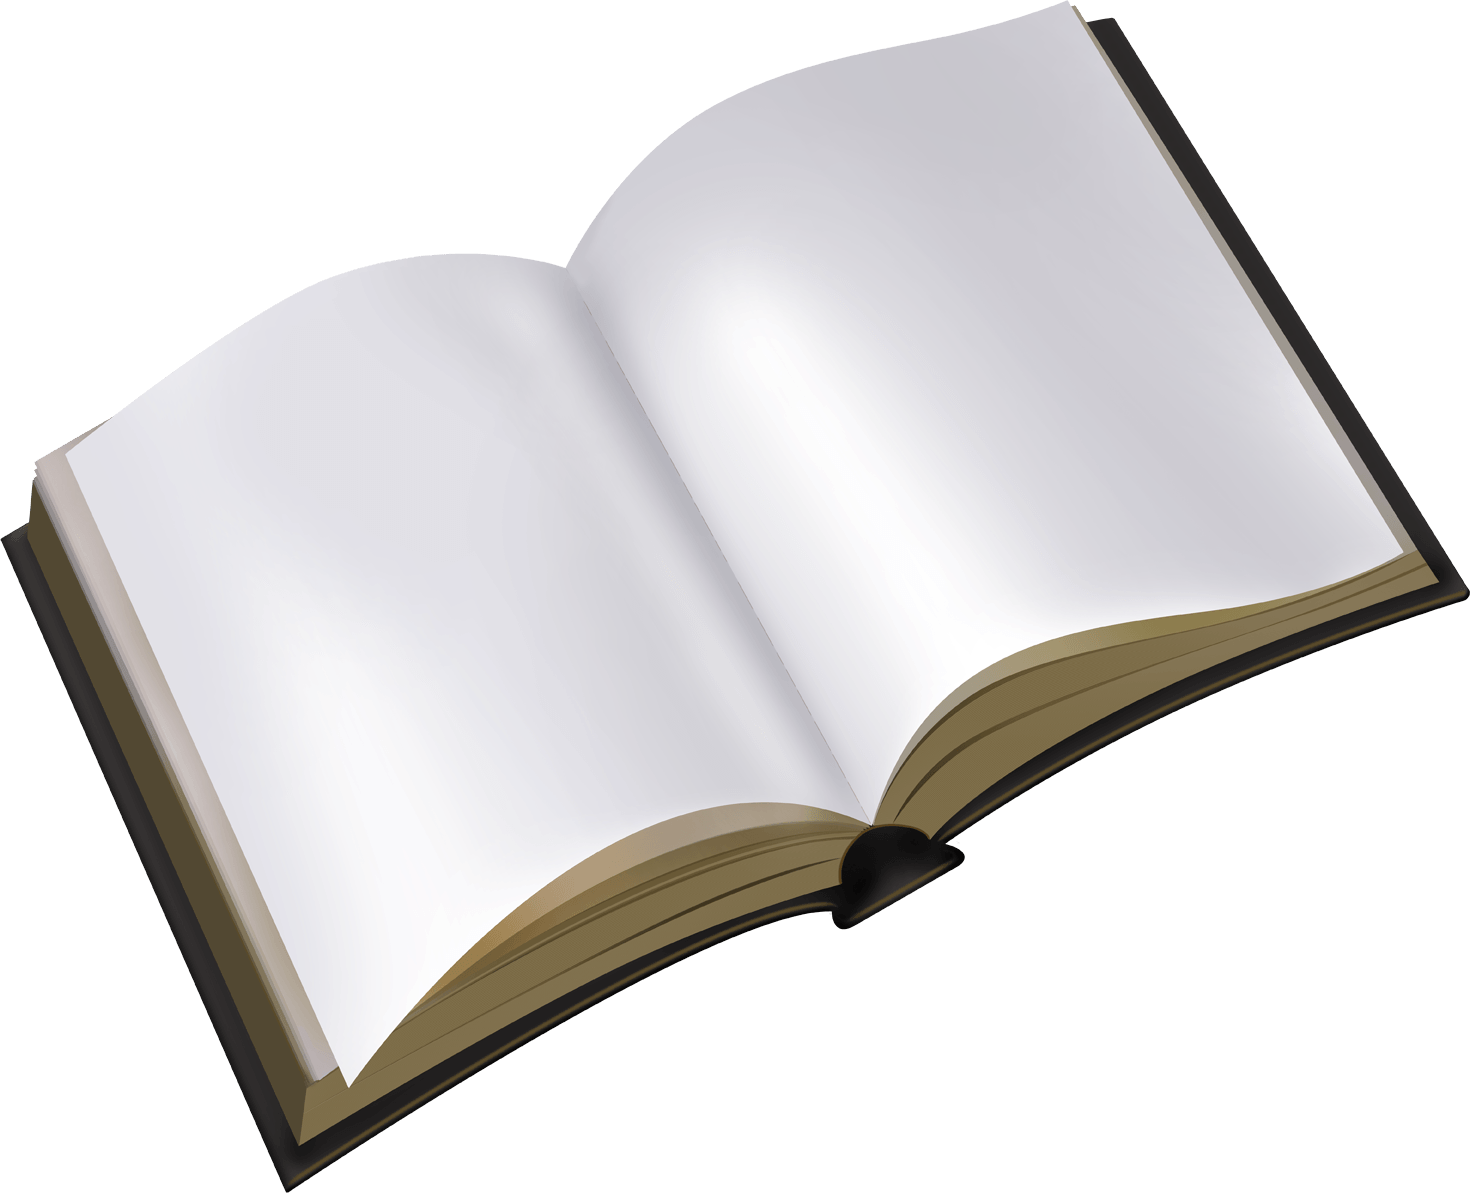 Clipart books transparent background. Book stack png stickpng